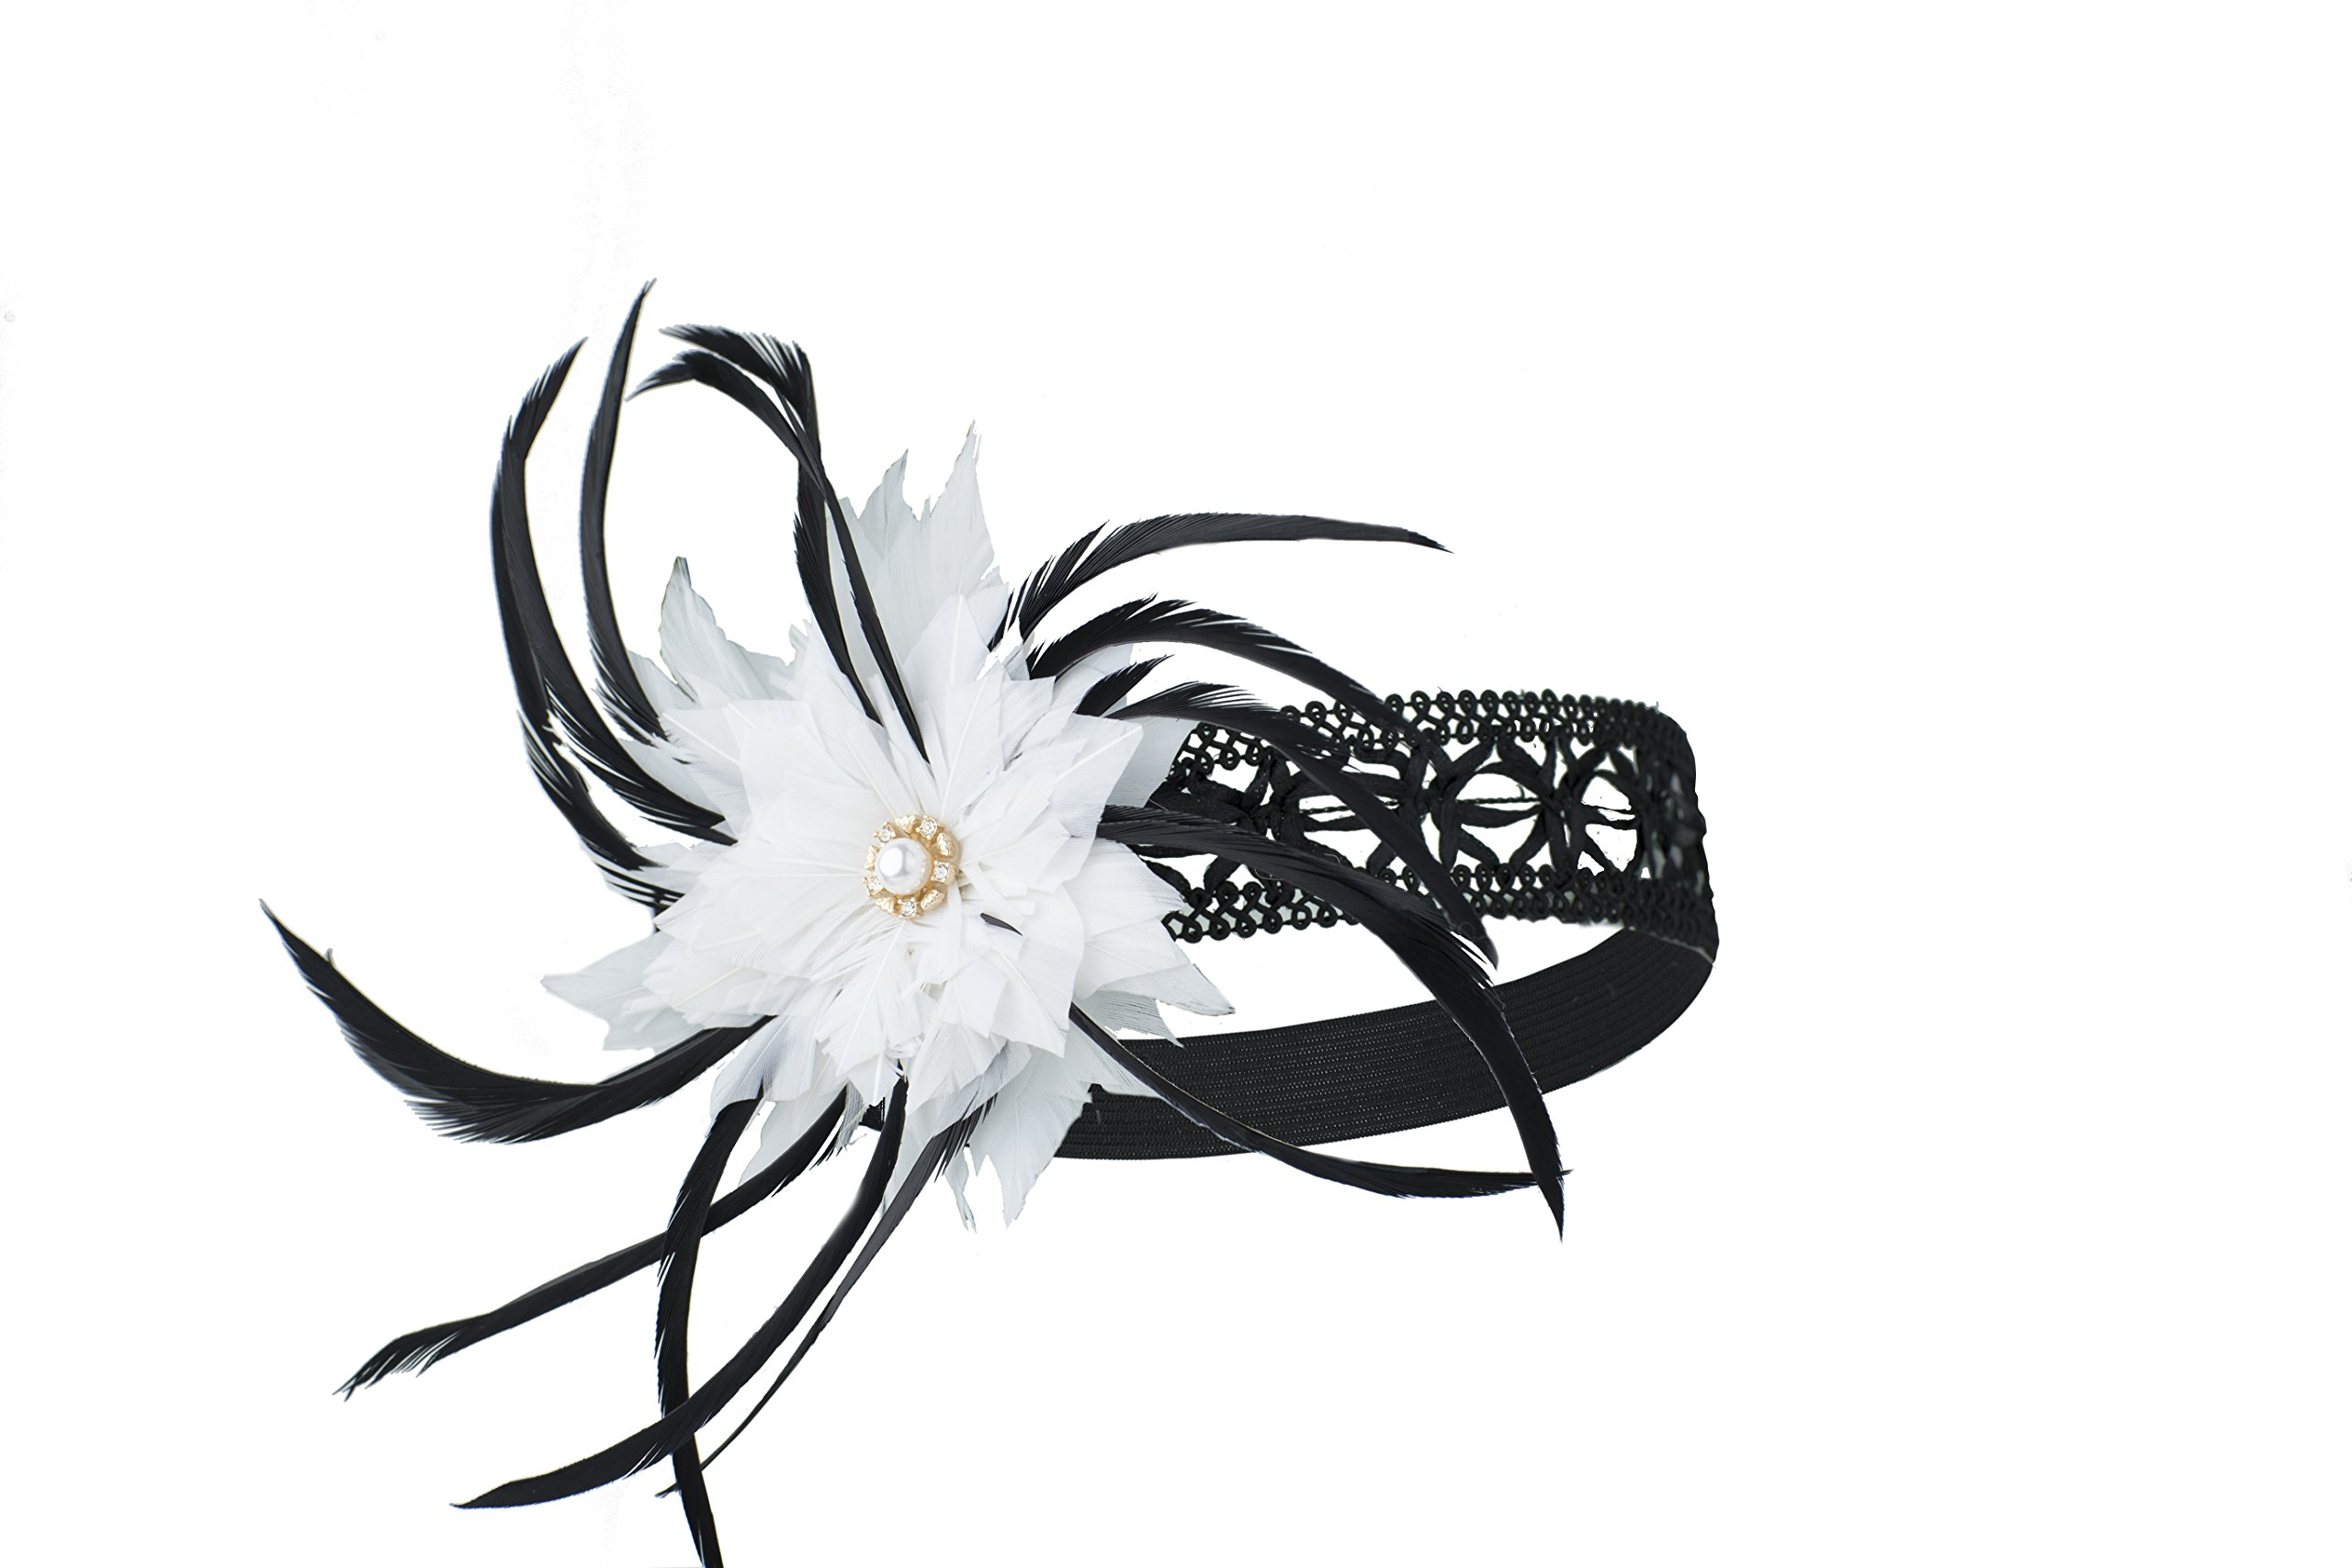 CONIFERA Headband Elastic 1920s Hollow White Black Feather Flower with Crystal Glass Stone for Women